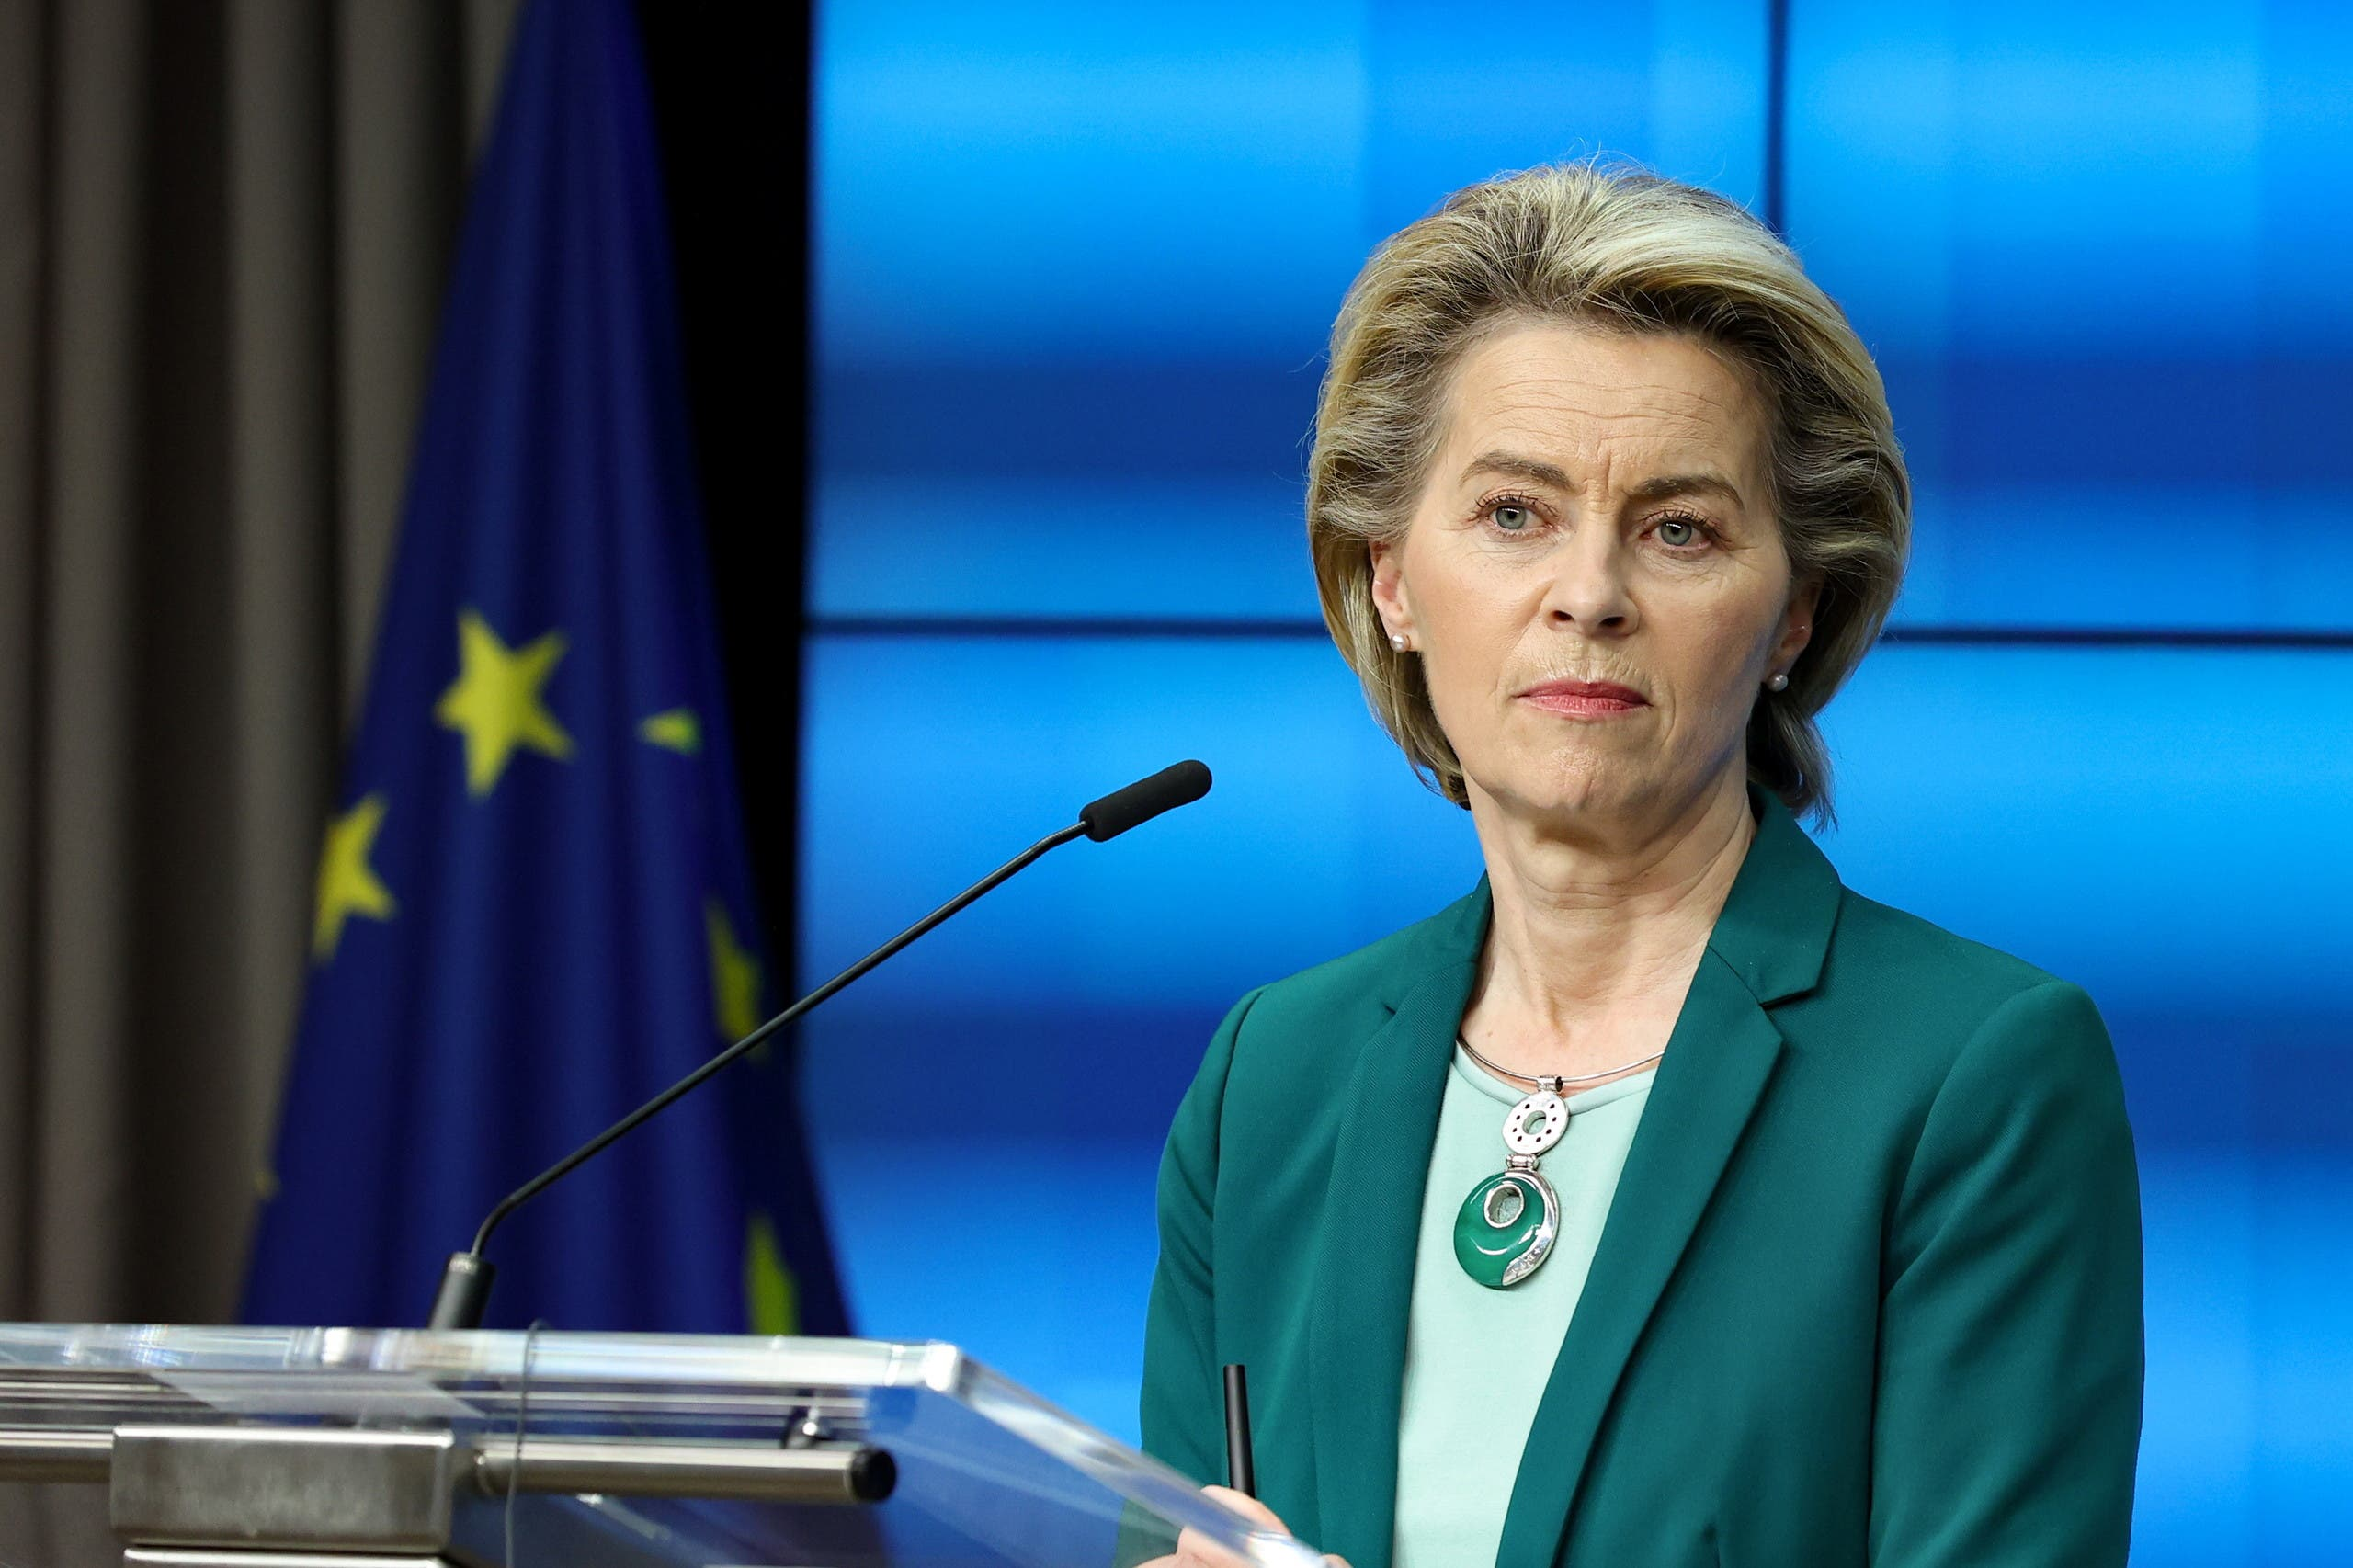 European Commission President Ursula von der Leyen delivers a joint press conference with the European Council President at the end of the first day of a European Union (EU) summit. (Reuters)